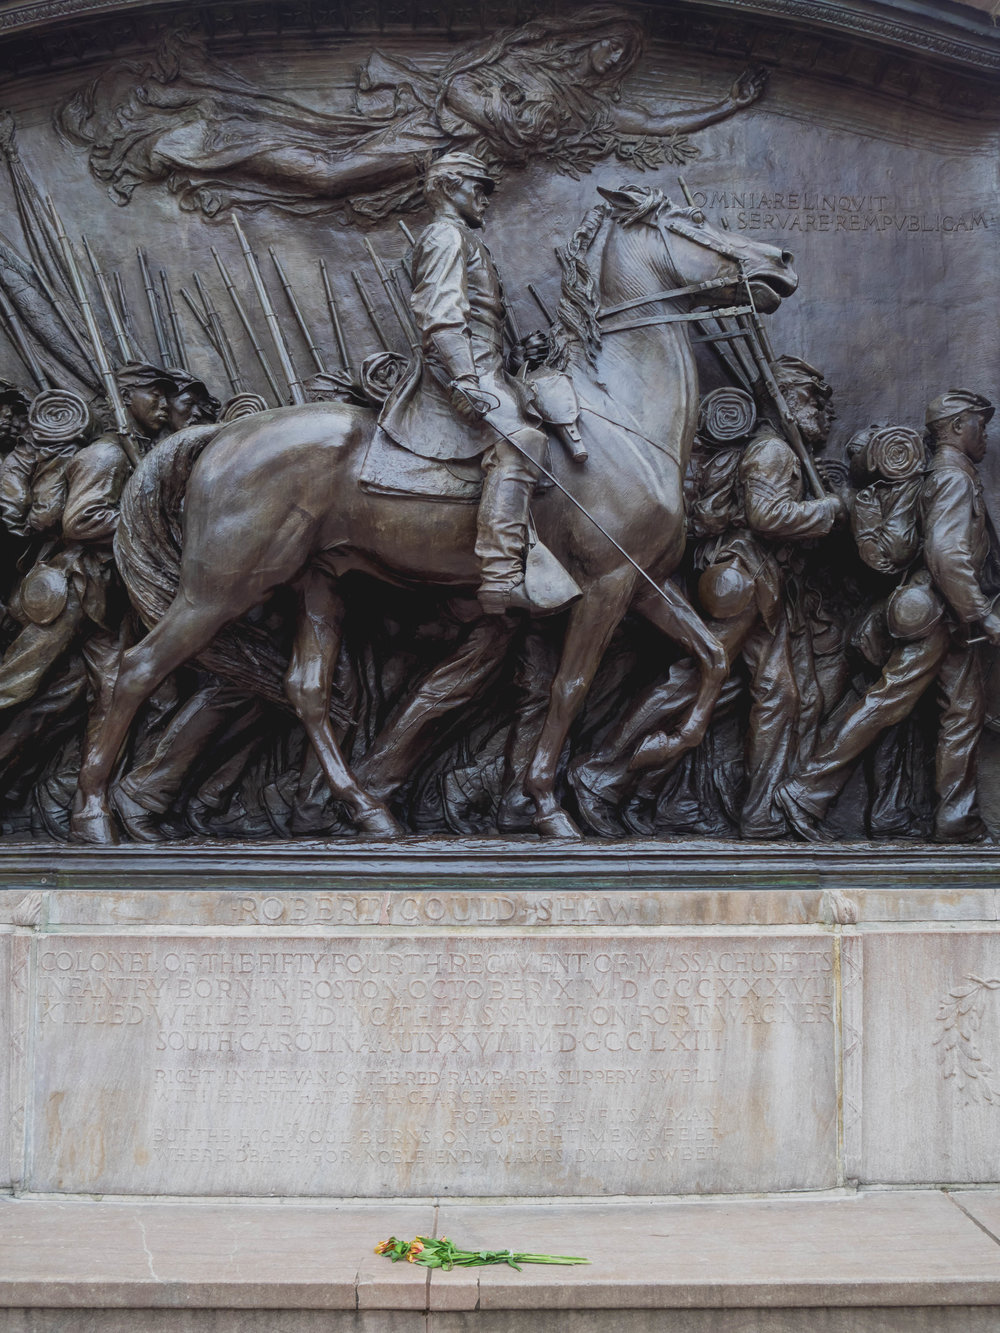 robert gould shaw memorial.